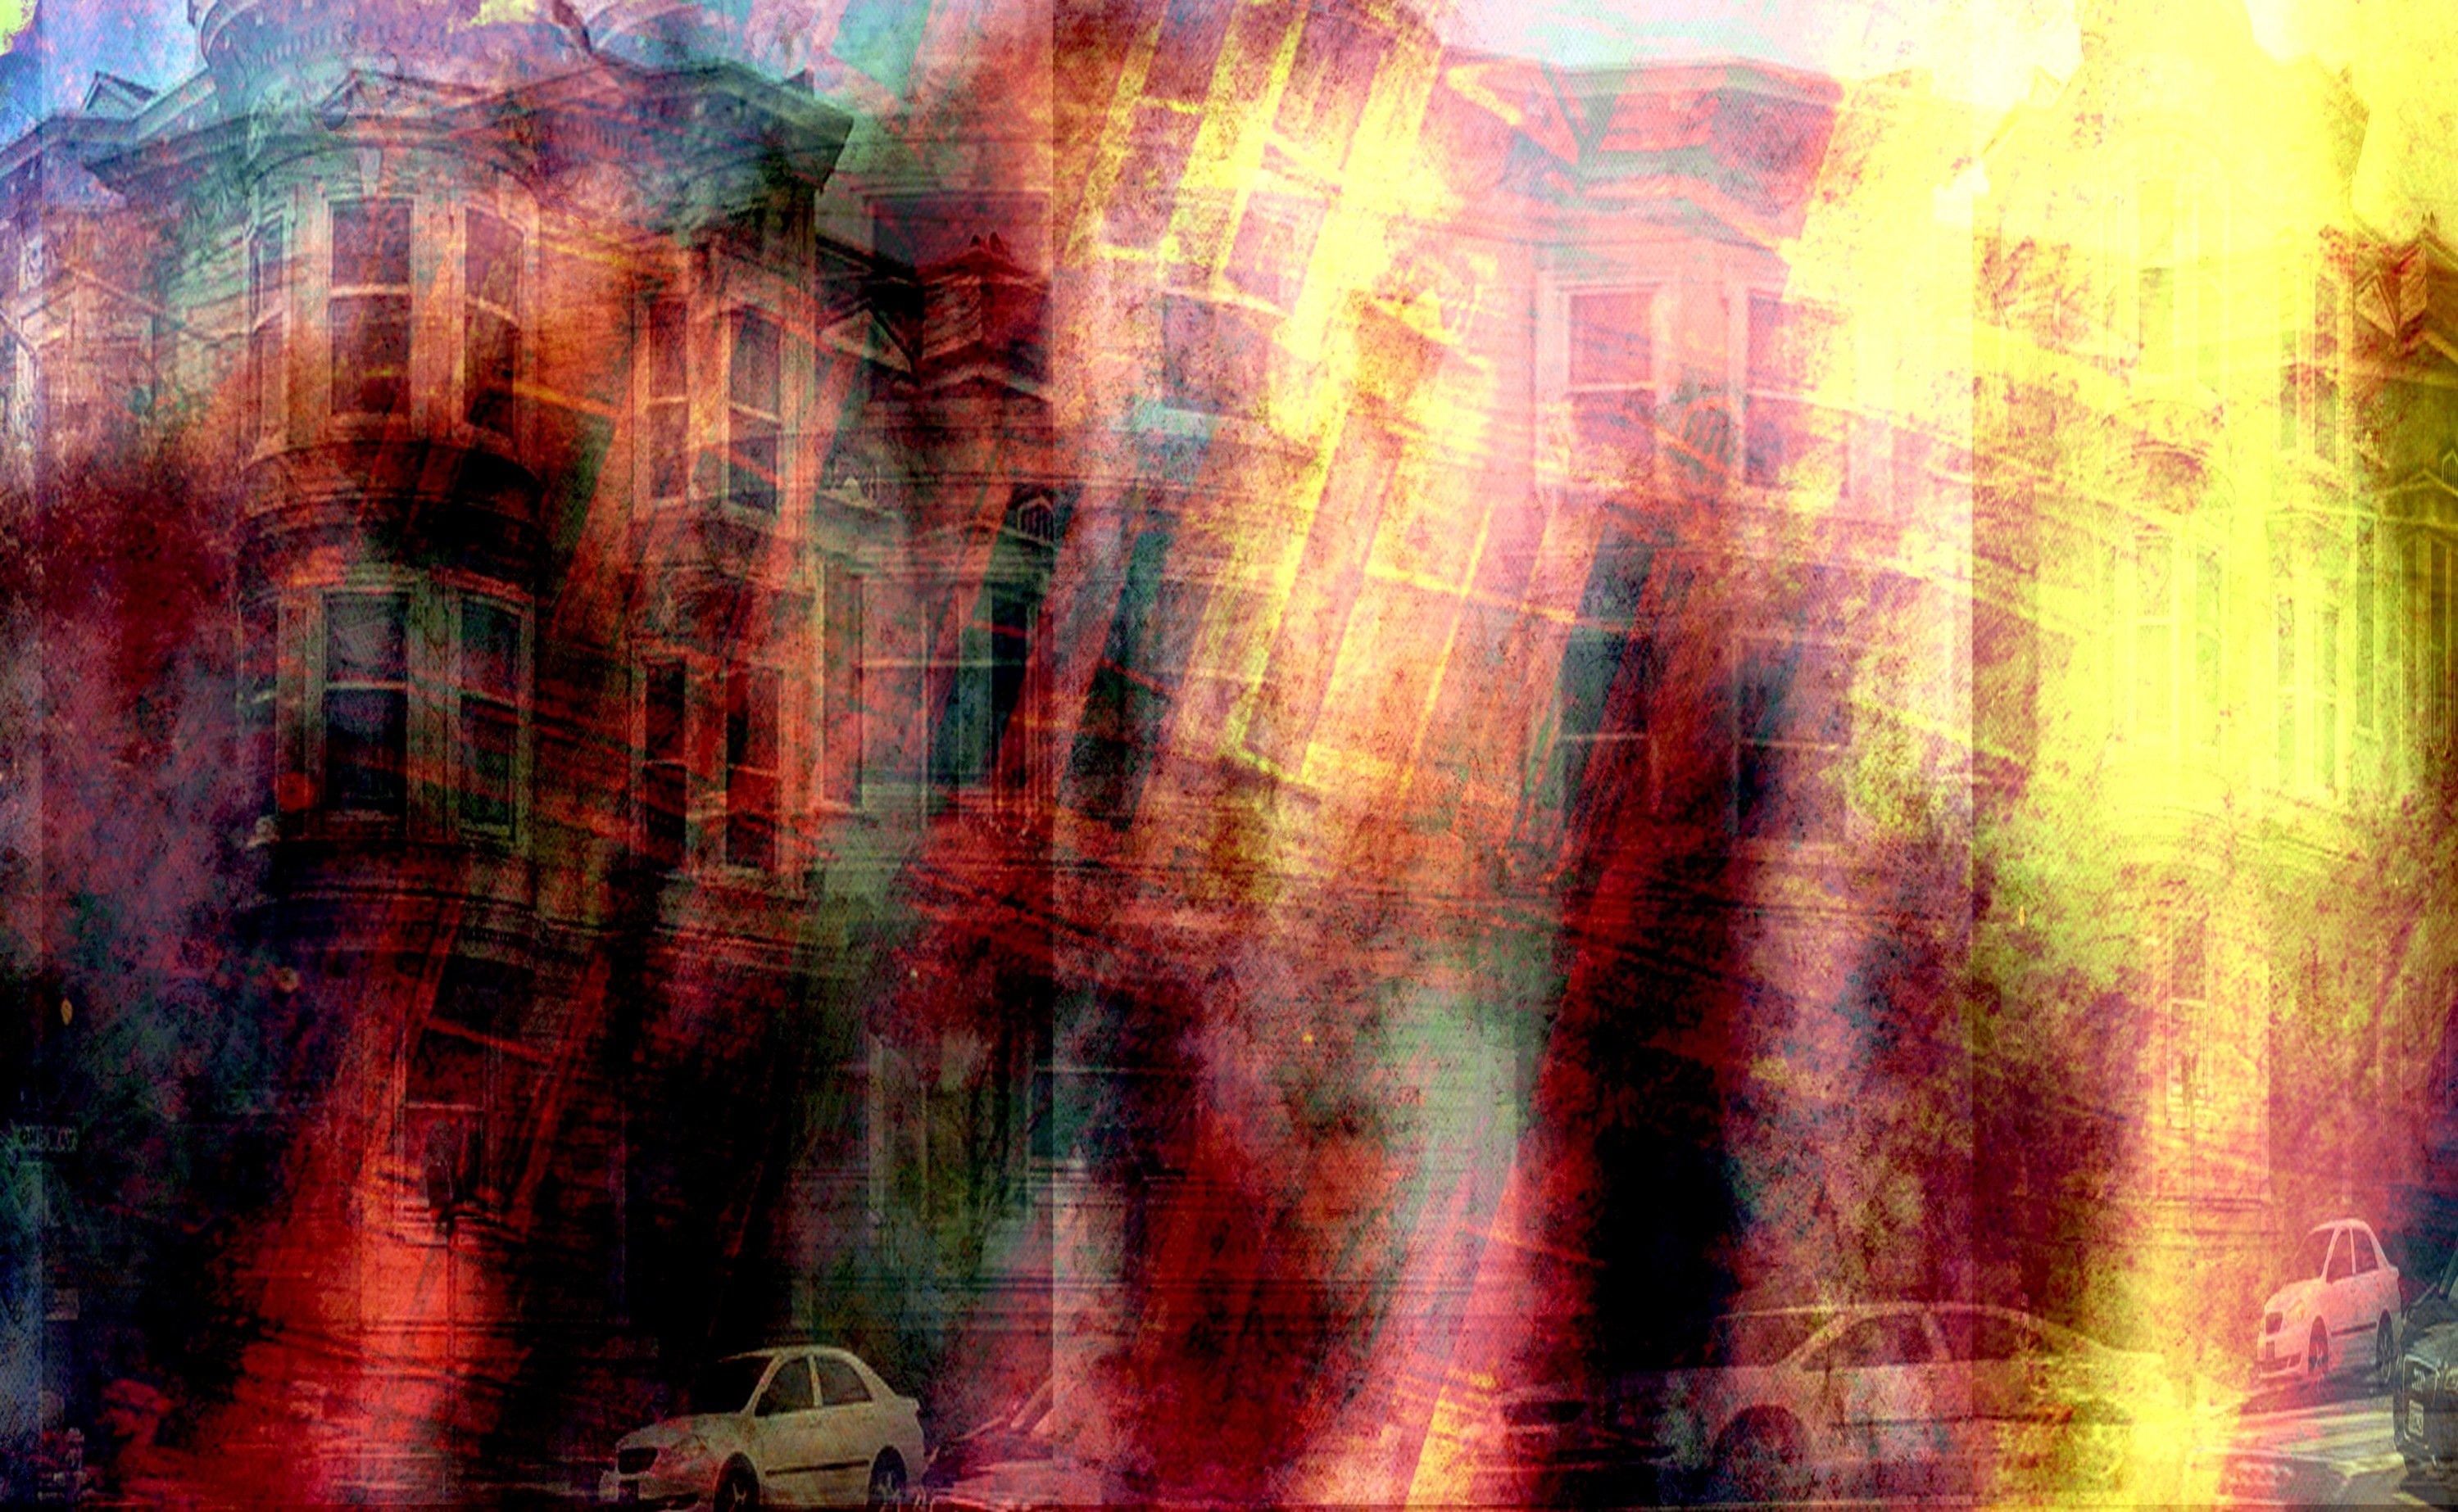 A shot I took and photoshopped, layering the same image over itself and then tilting it.  I love the energy and colors...